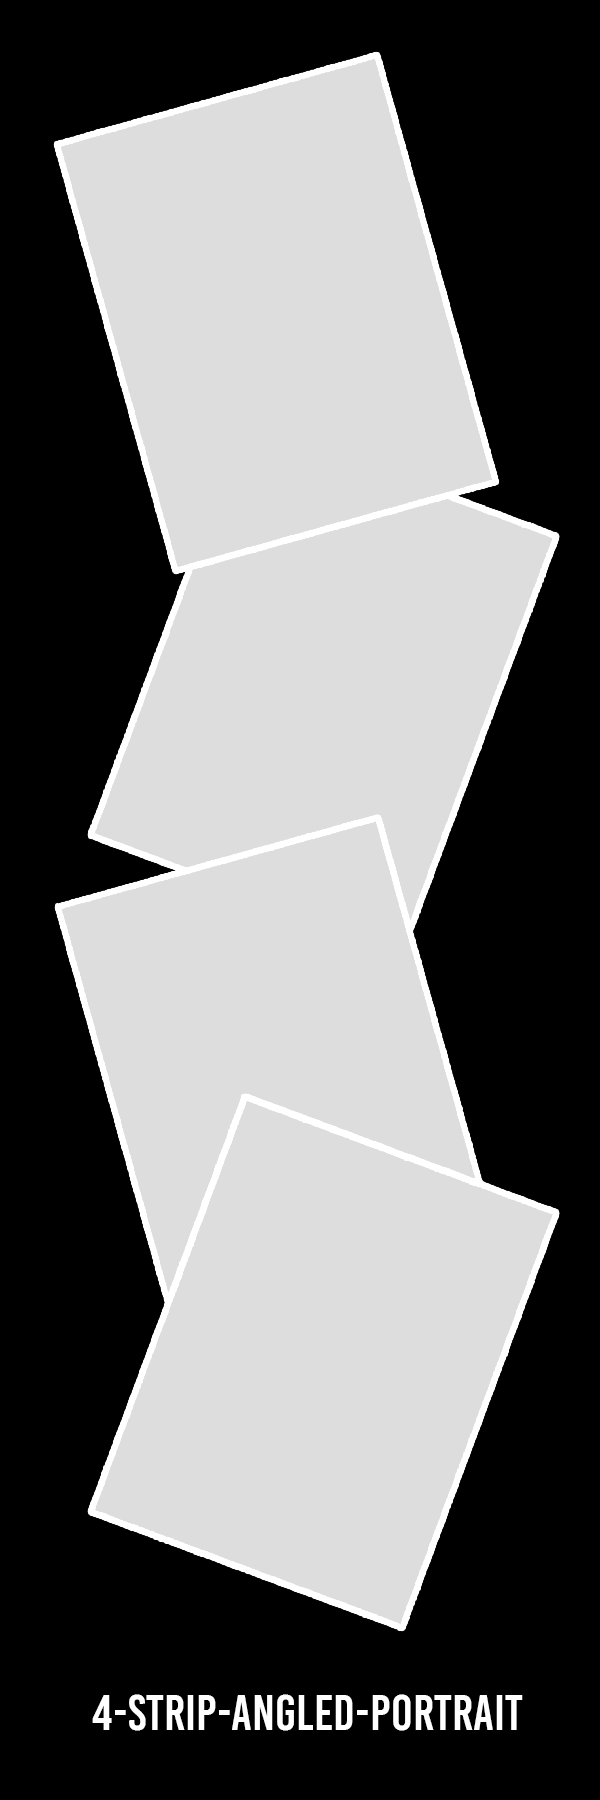 4-strip-angled-portrait